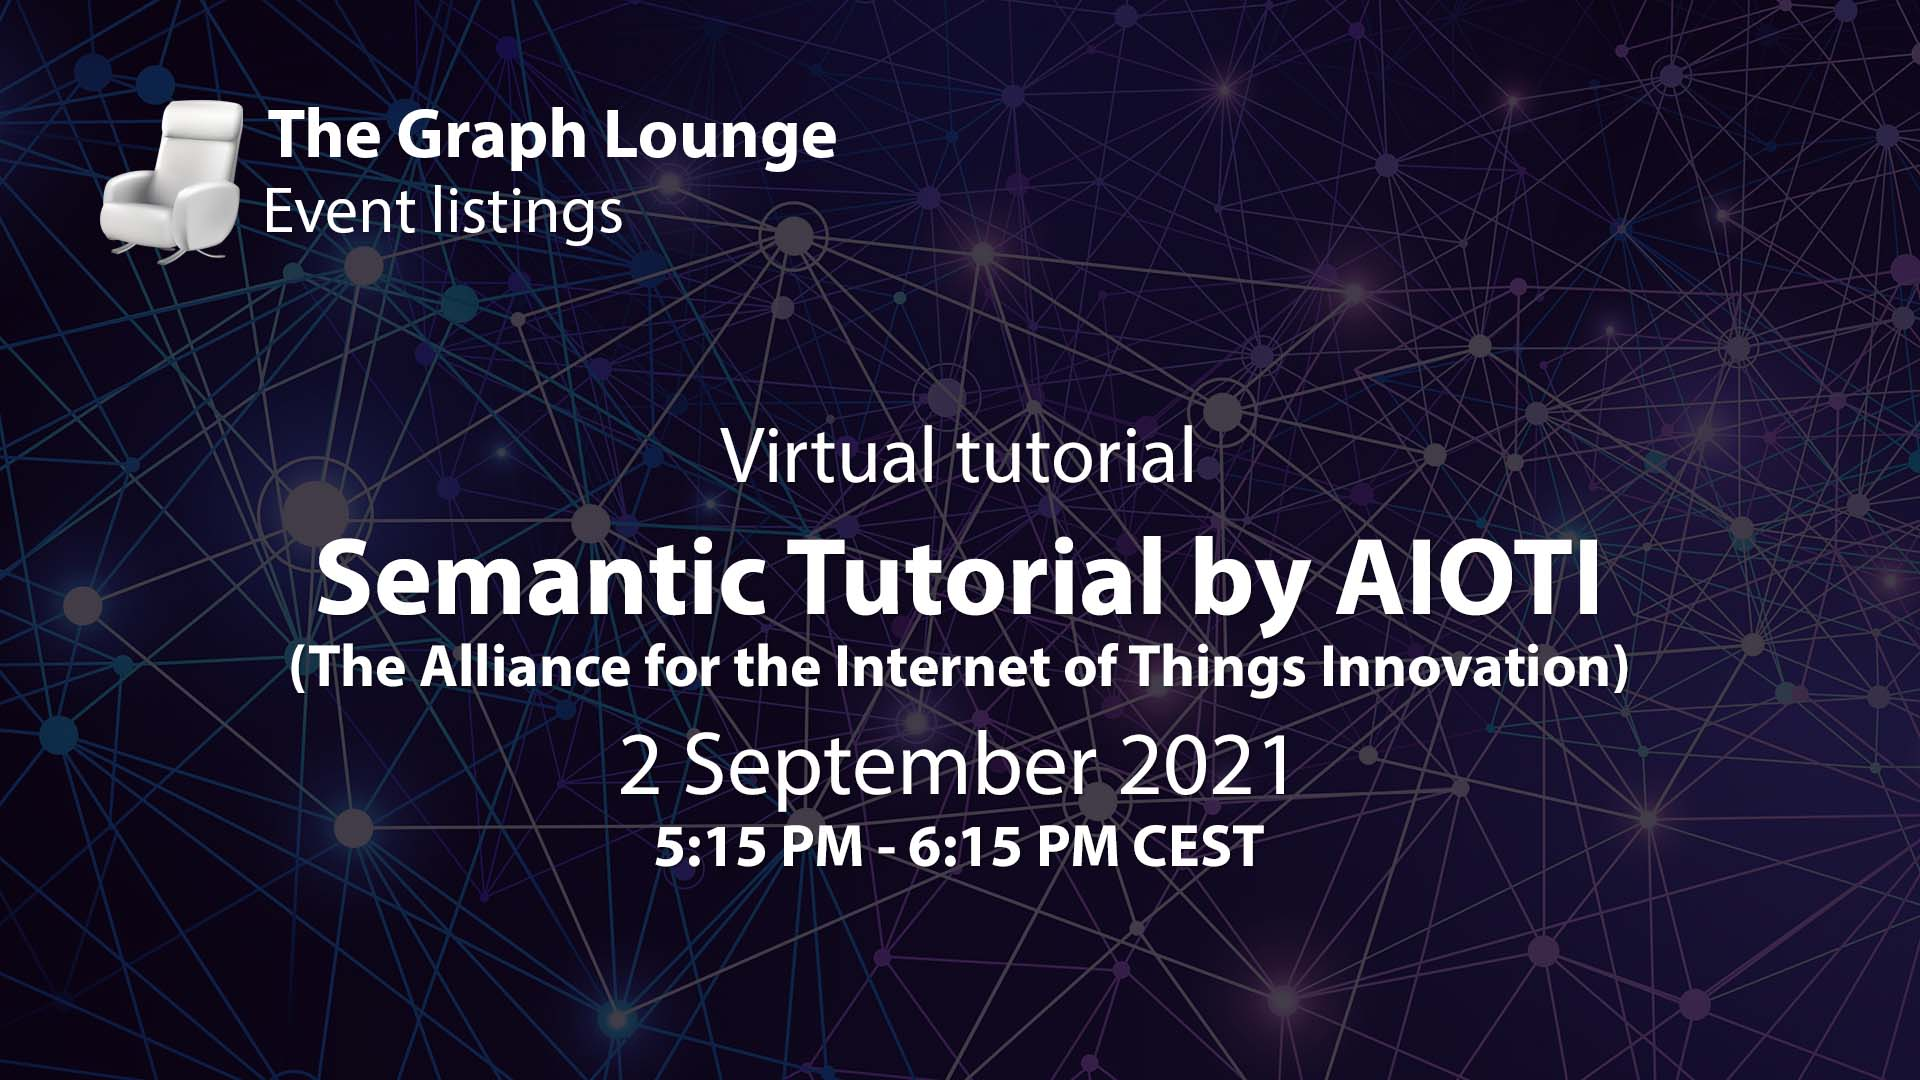 Semantic Tutorial by AIOTI (The Alliance for the Internet of Things Innovation)